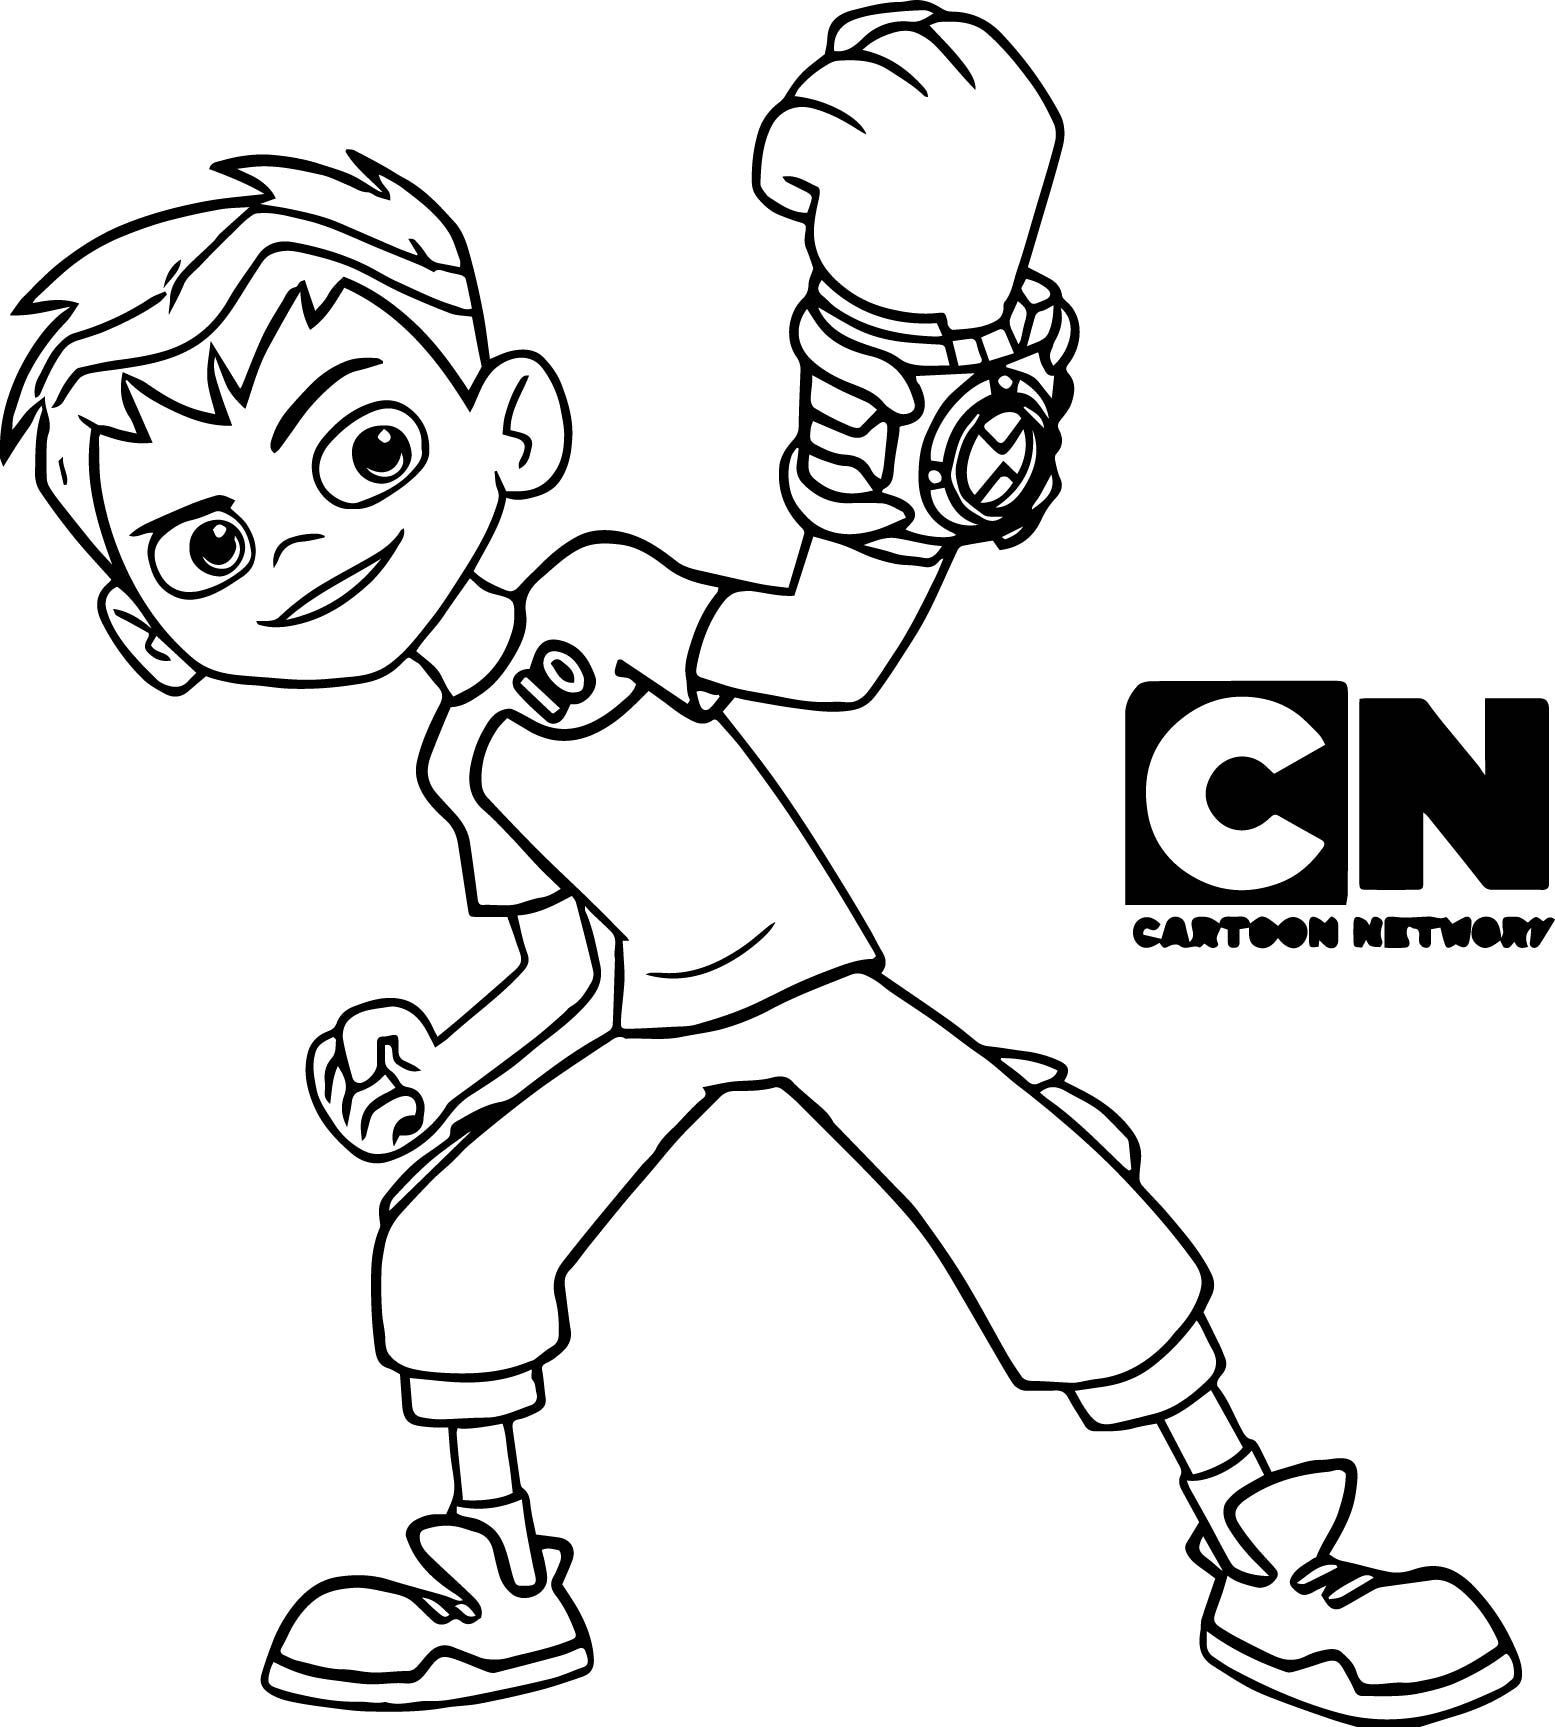 Coloring Pages Ben 10 Lego Coloring Pages Coloring Pages Cartoon Coloring Pages